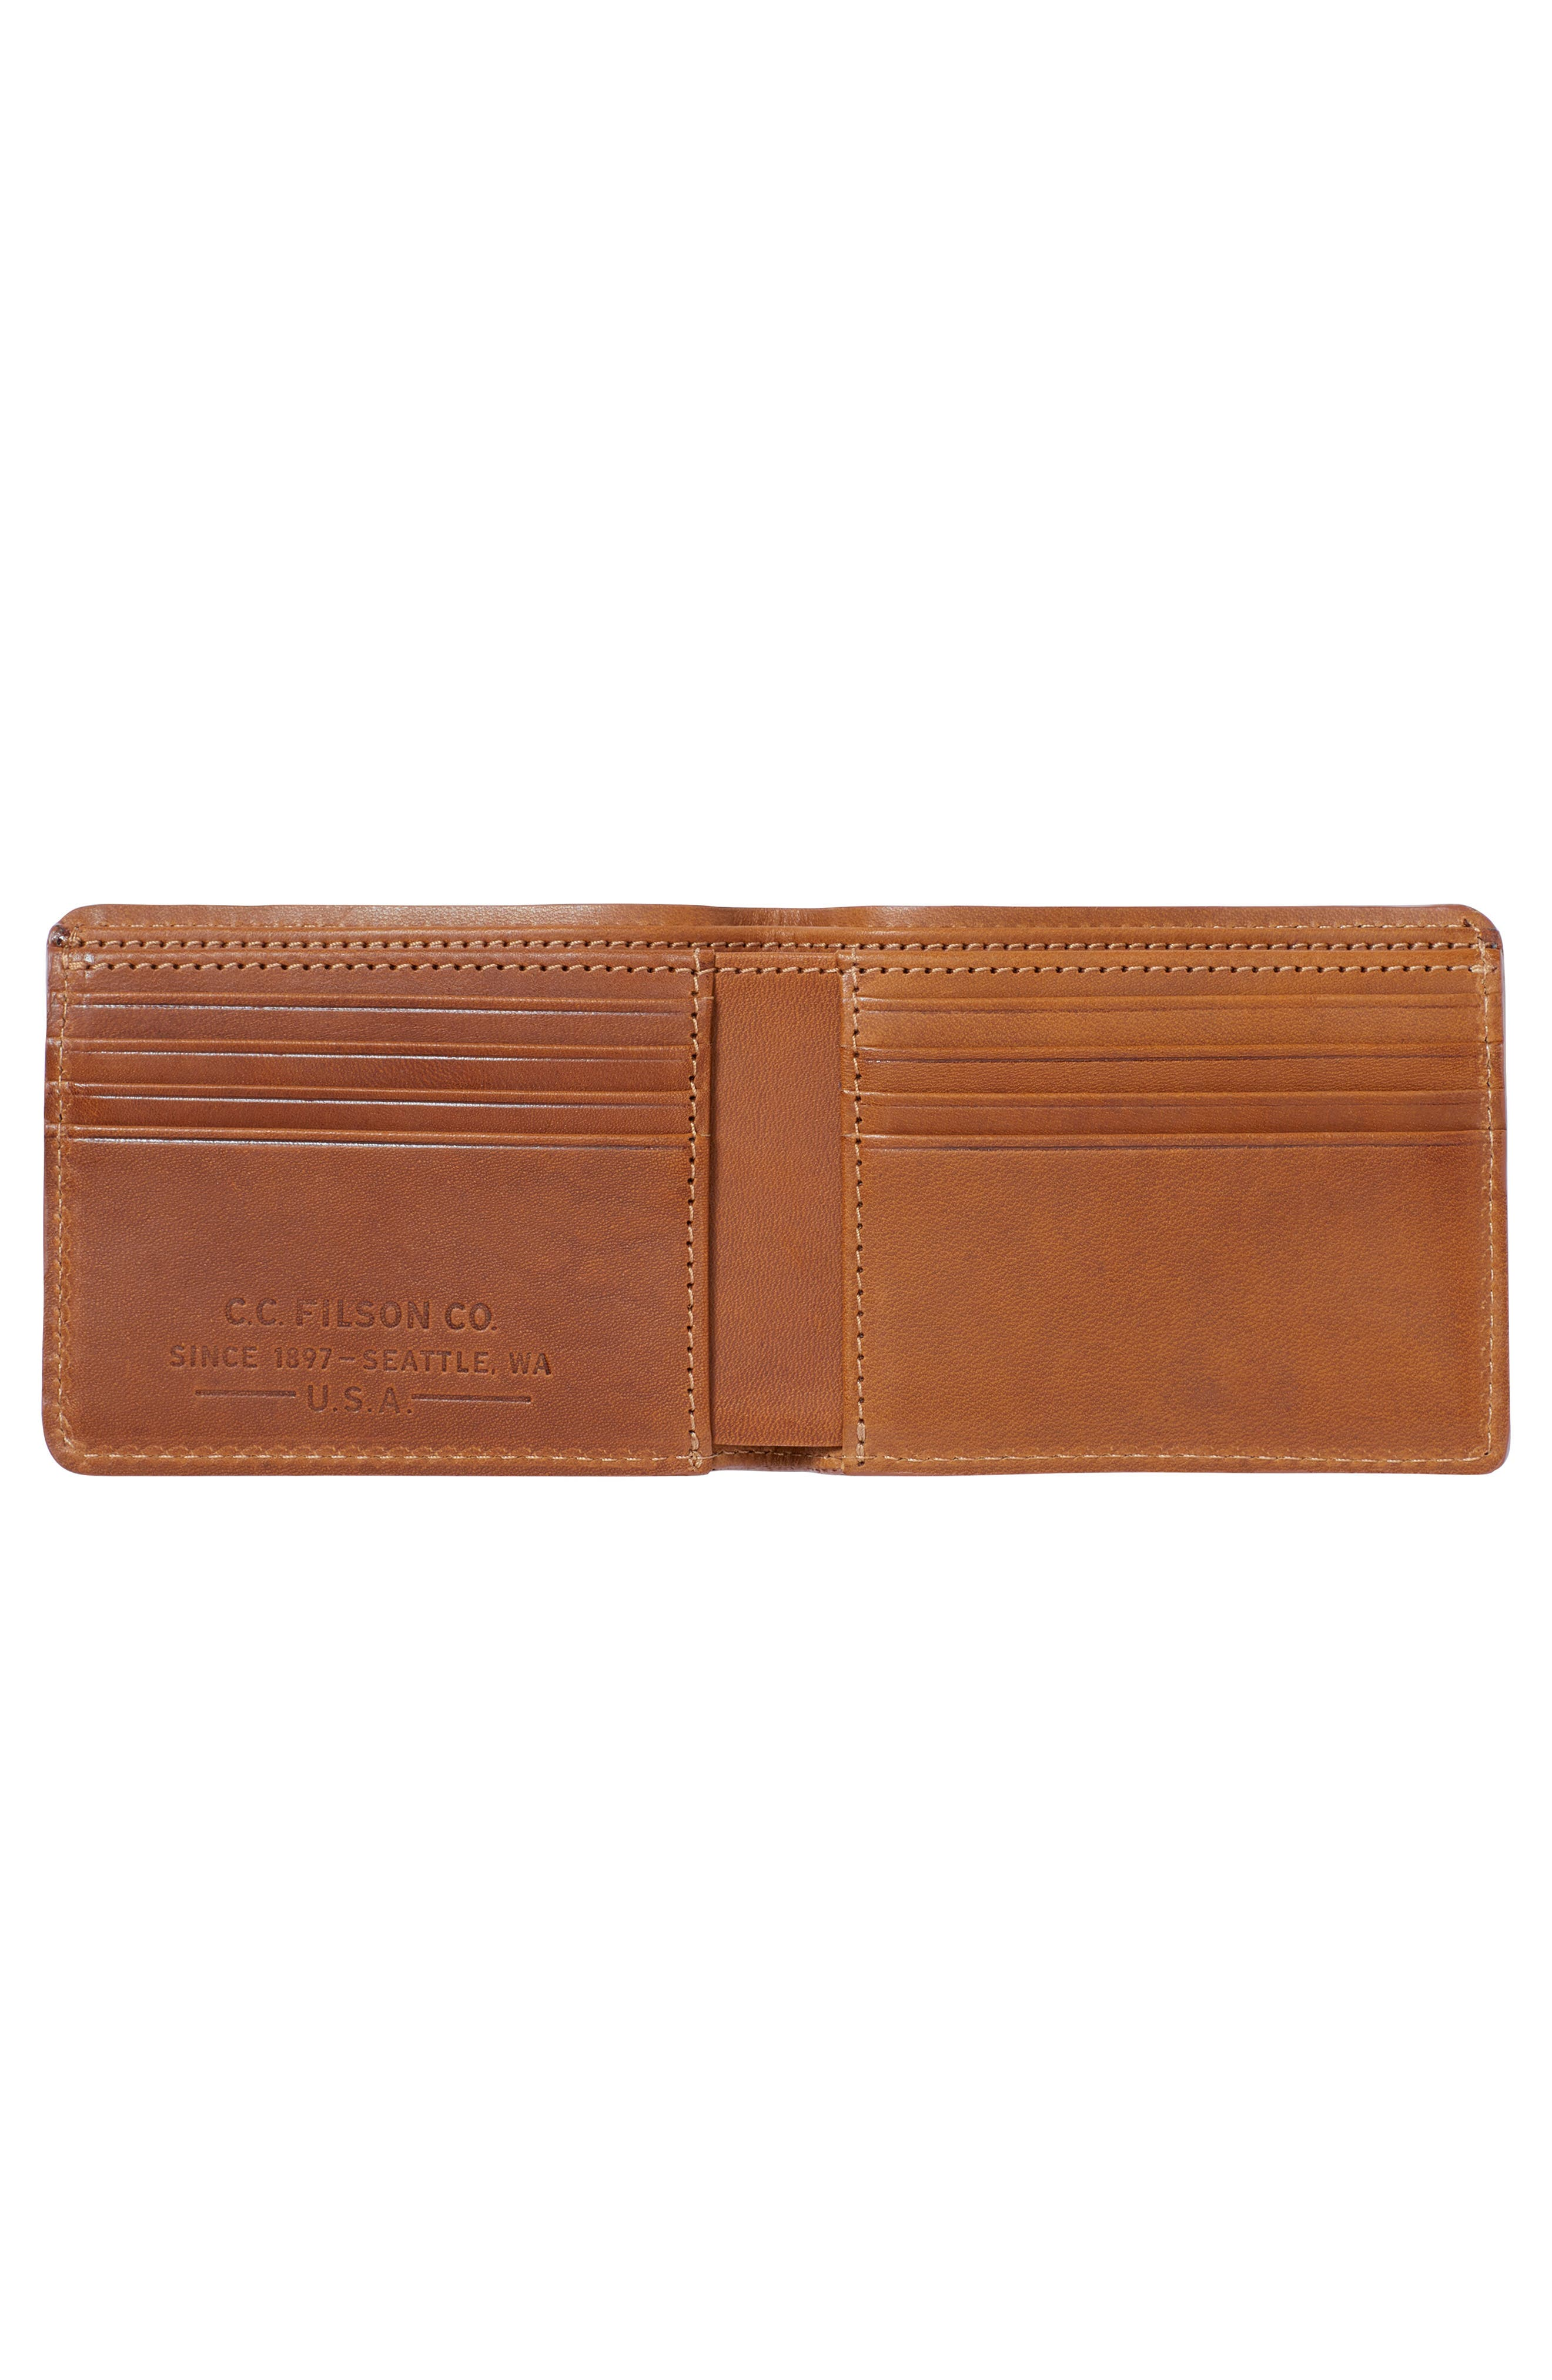 Outfitter Leather & Canvas Bifold Wallet,                             Alternate thumbnail 2, color,                             TAN